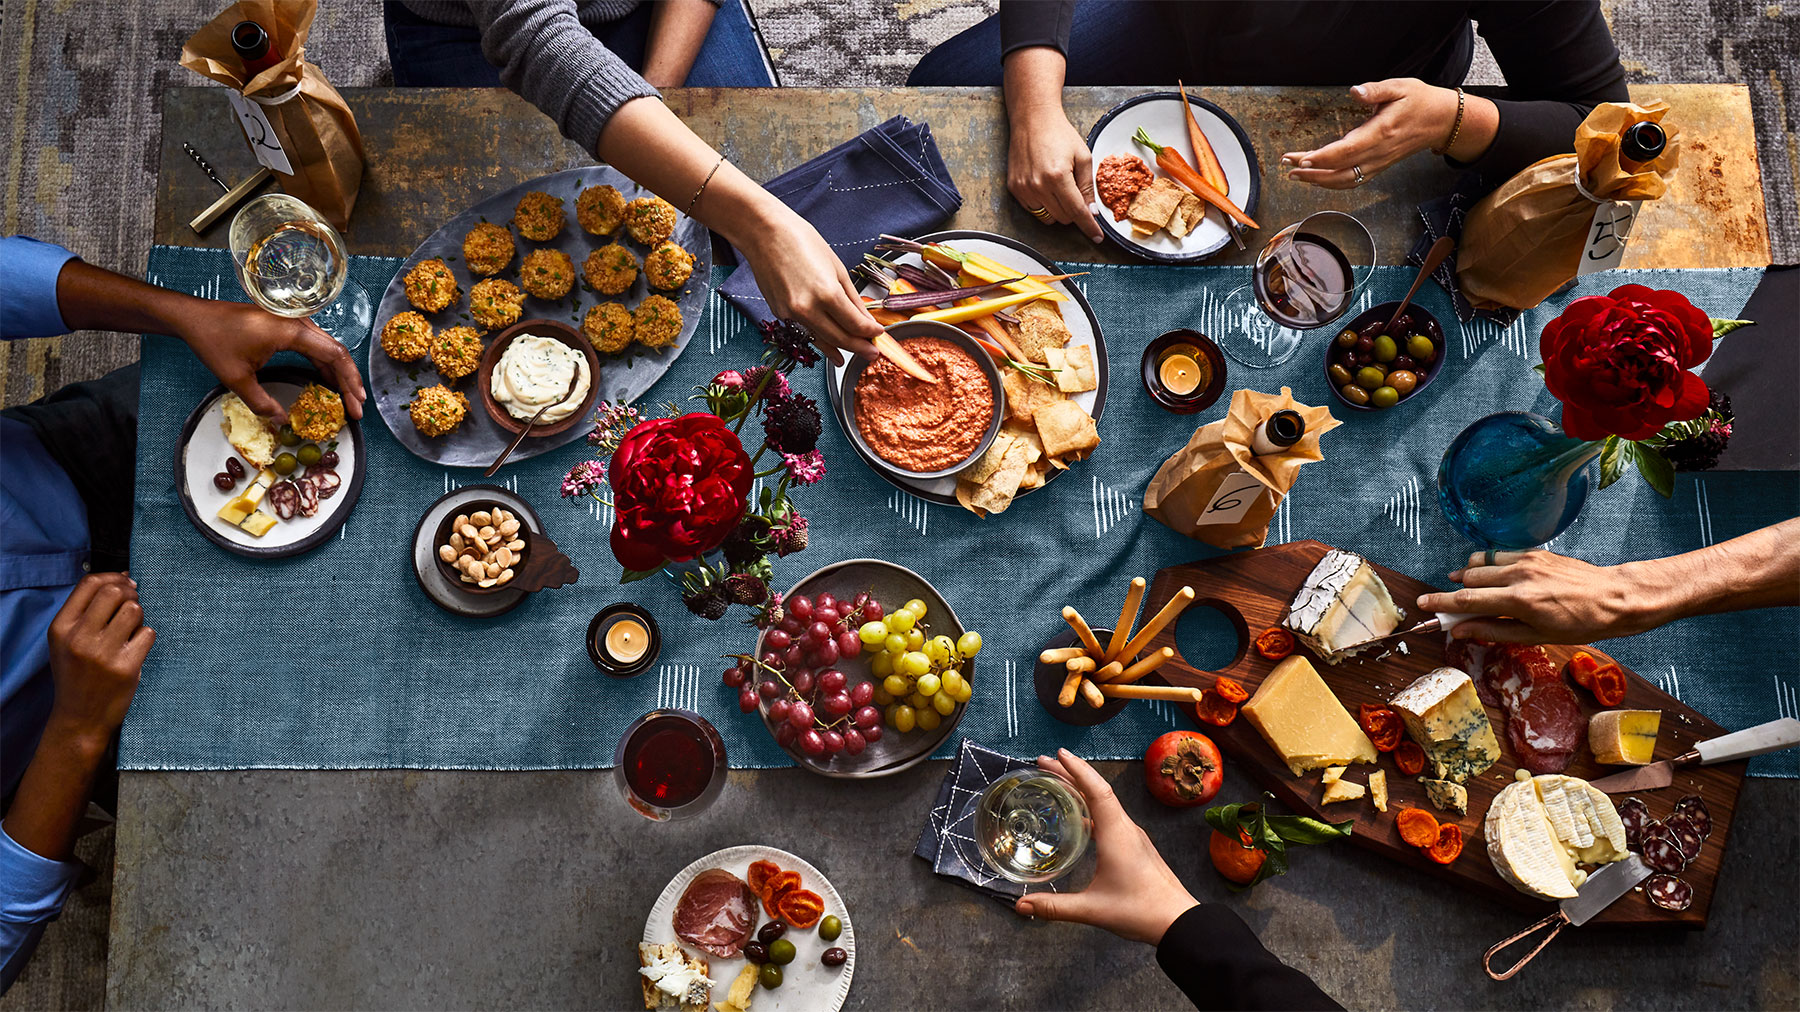 Party With a Purpose Recipes | Real Simple March 2020